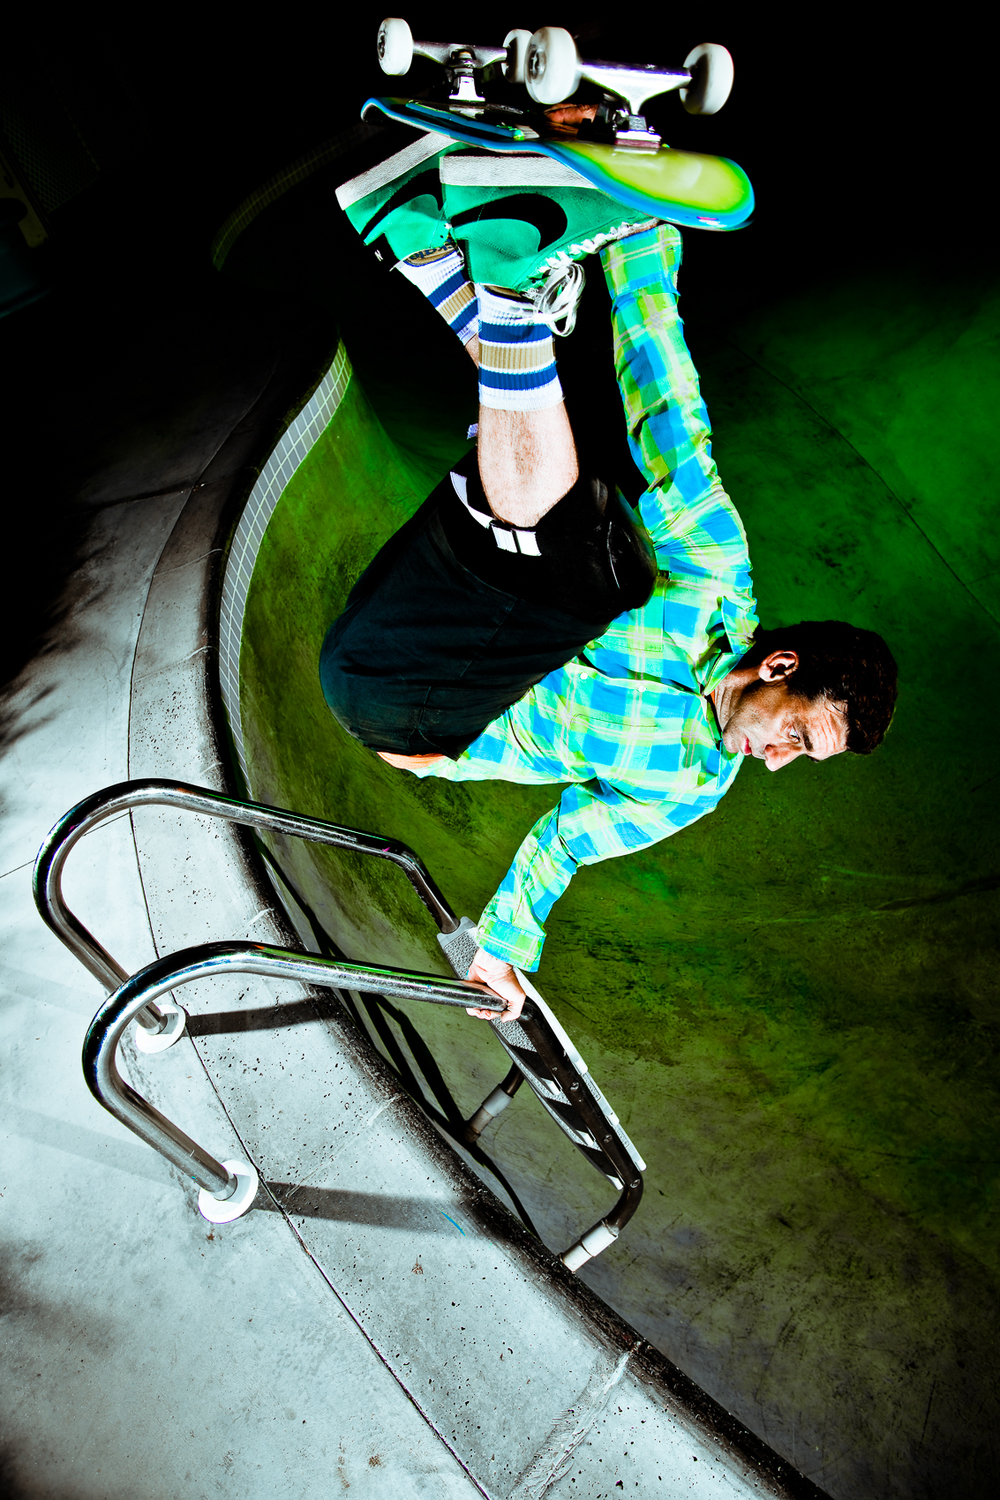 Lance Mountain, Skateboarder Magazine, 2009